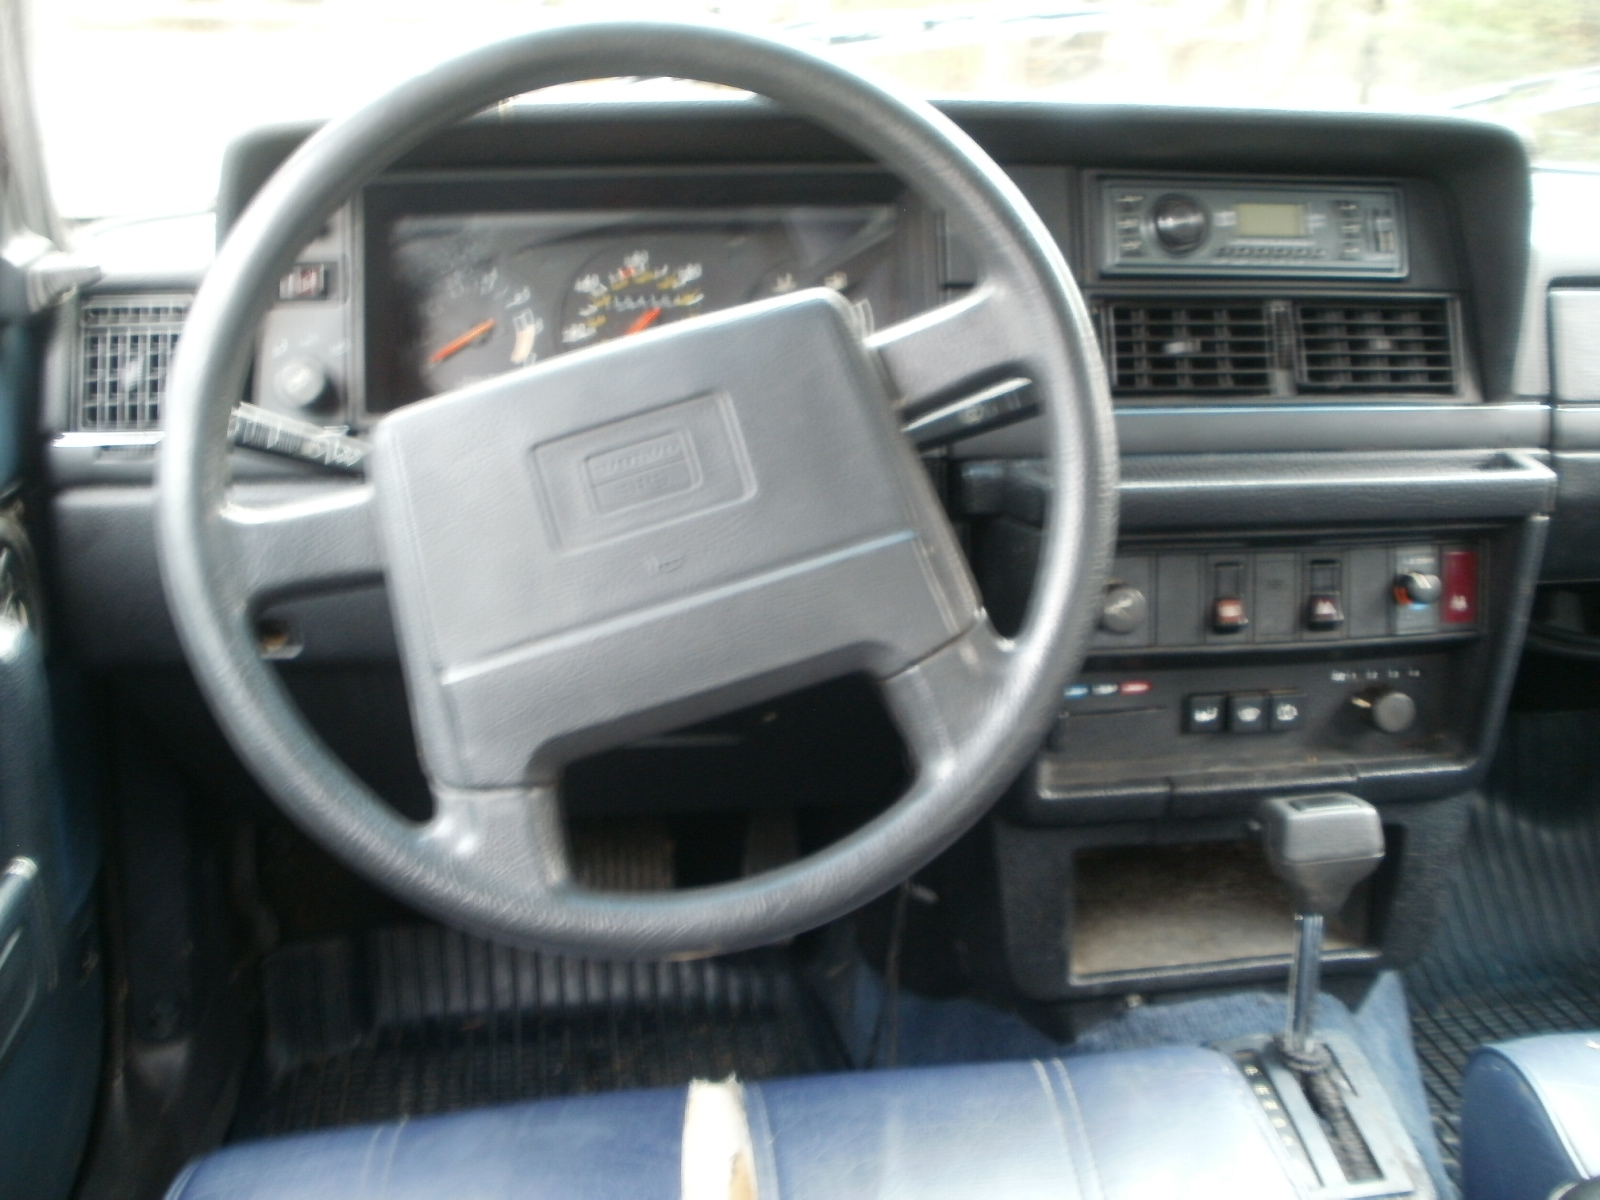 17-003 WHITE ON BLUE 1990 245DL AUTOMATIC FOR SALE AT RAINBOW AUTO